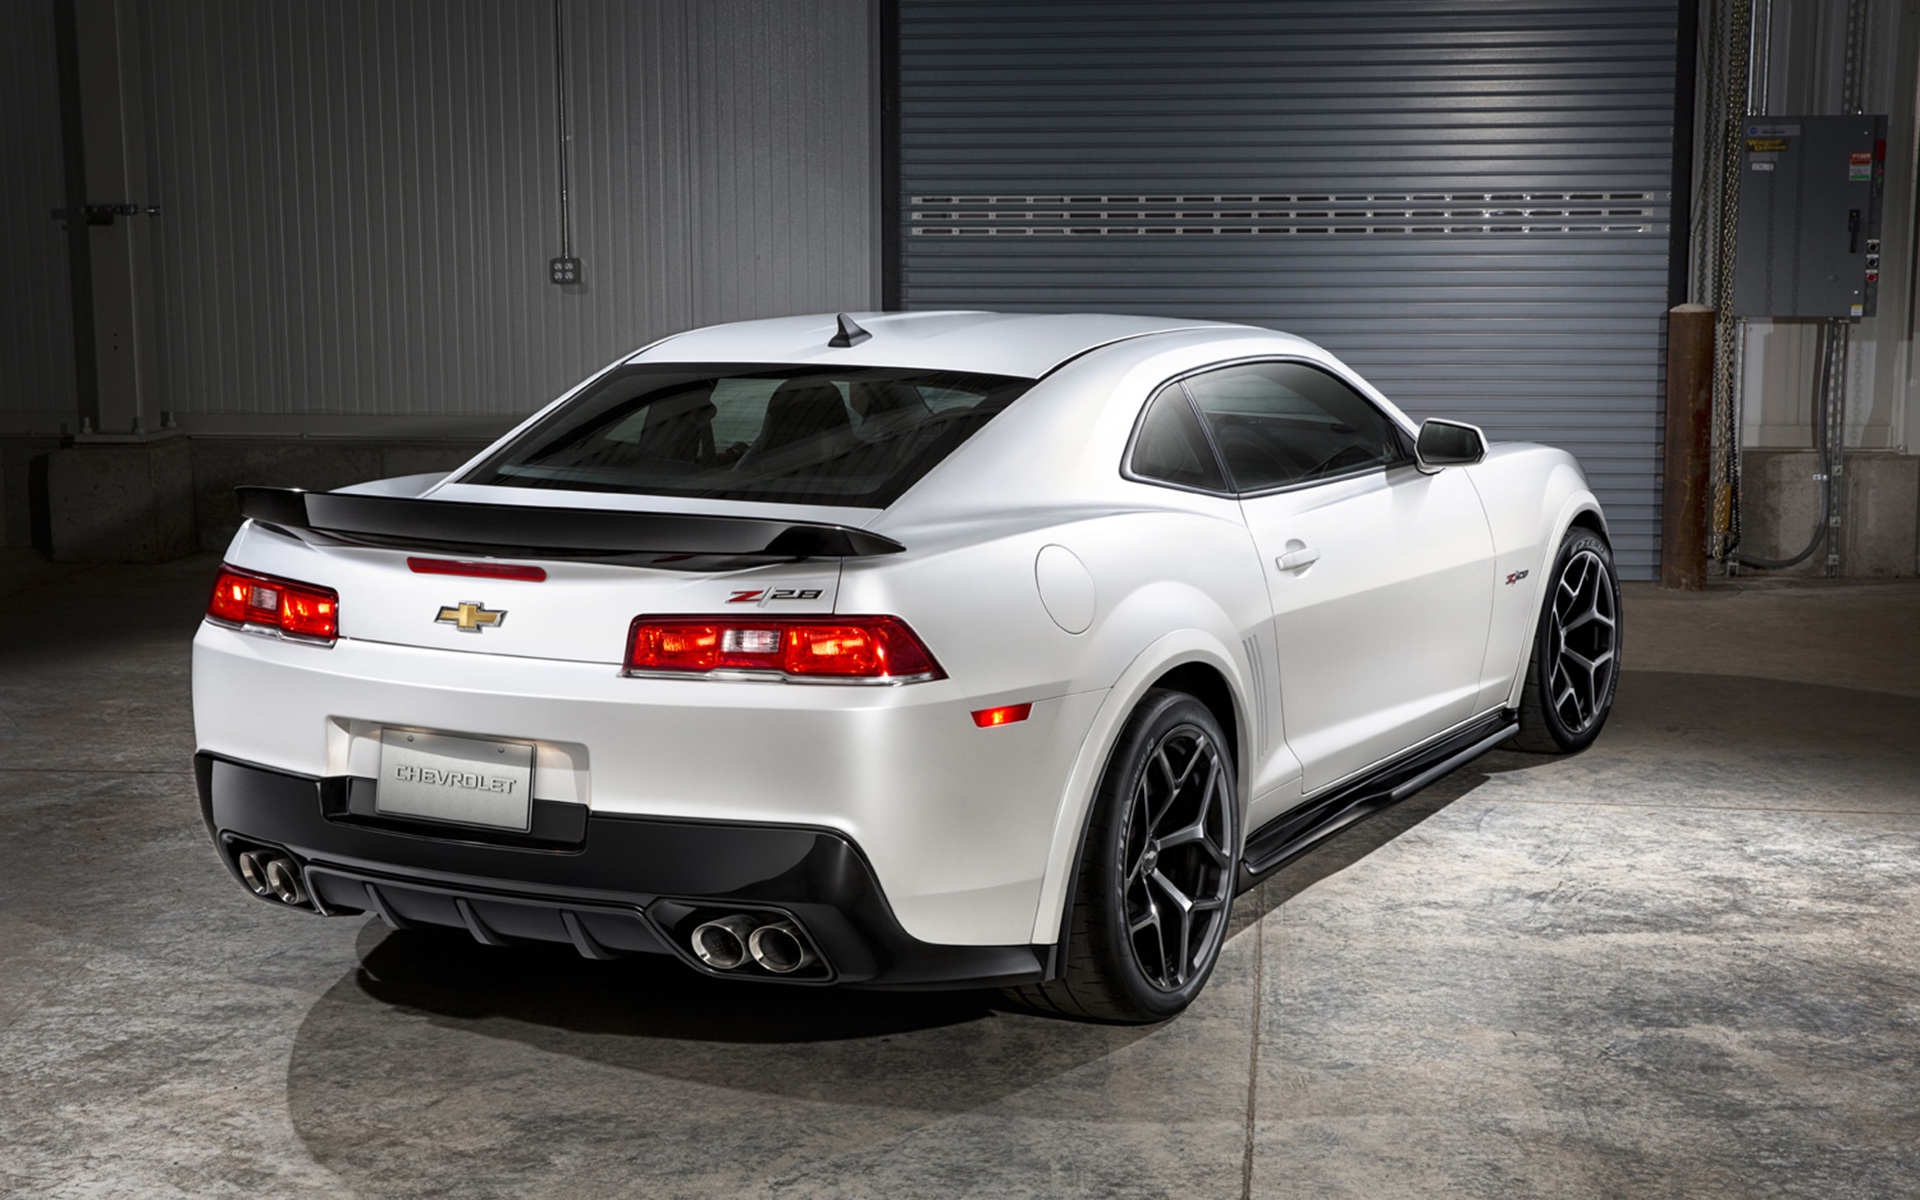 2014 Car Pictures 5 HD Wallpapers